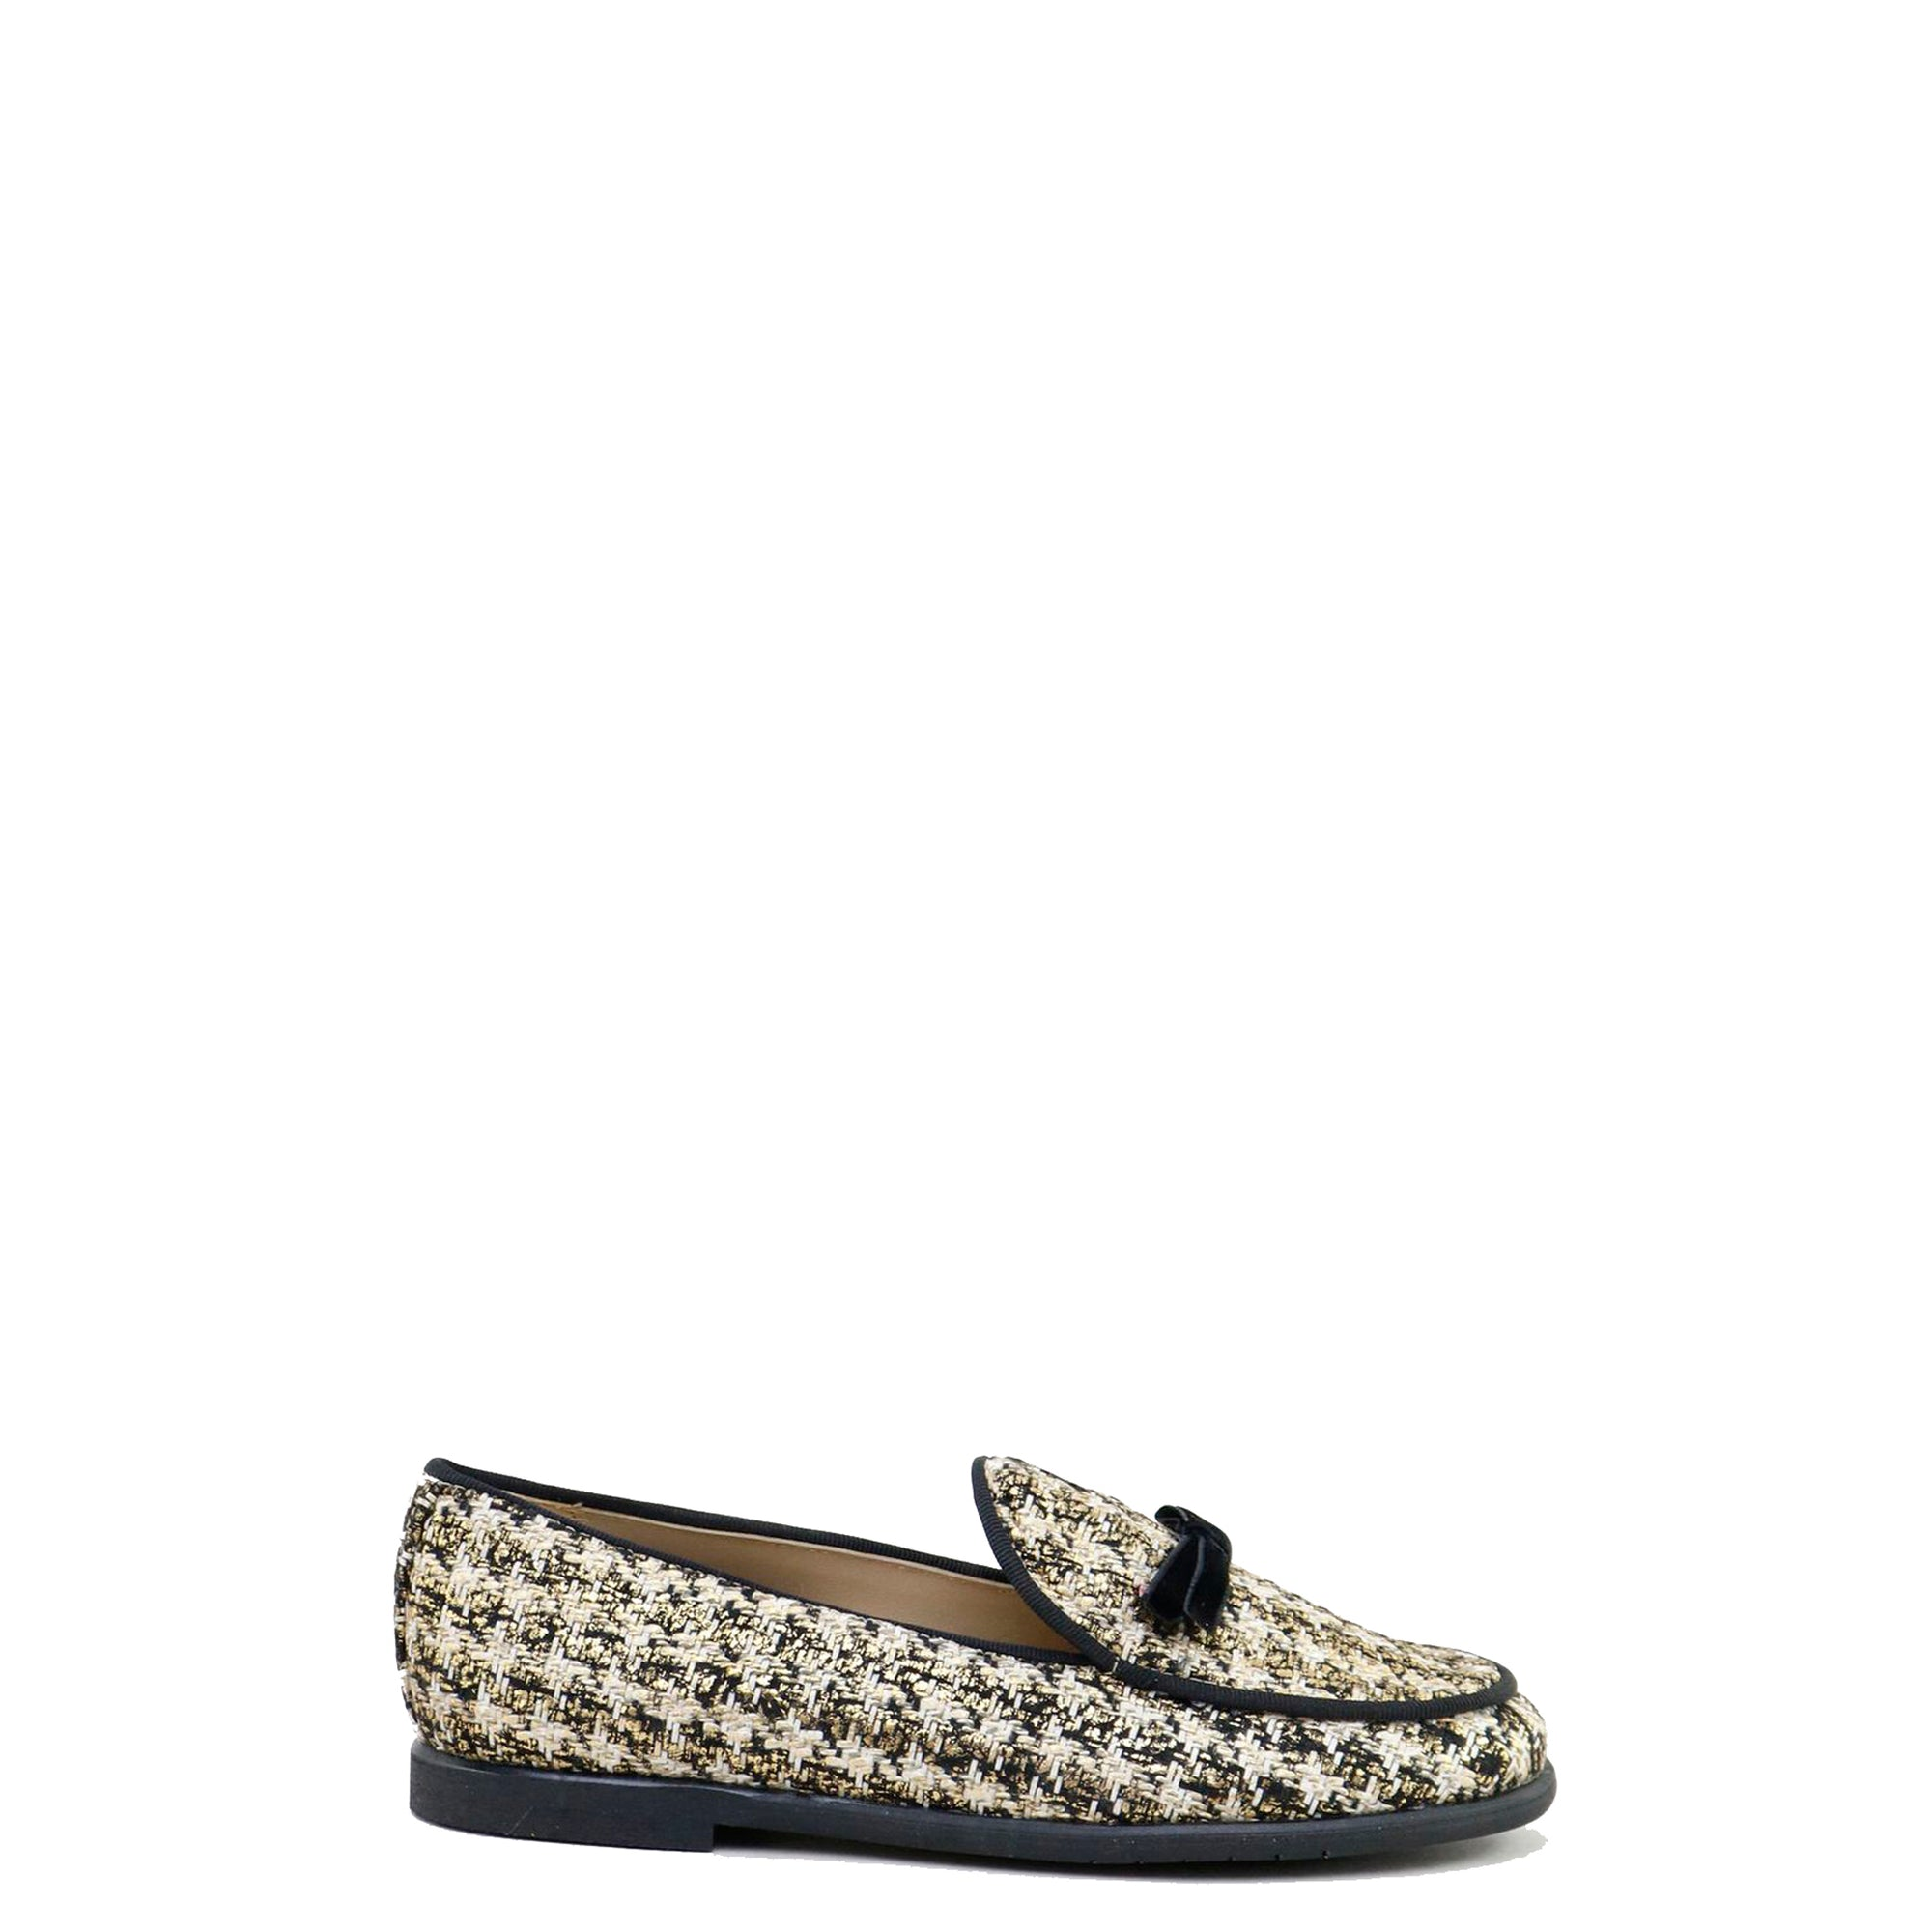 Papanatas Gold and Black Tweed Bow Loafer-Tassel Children Shoes